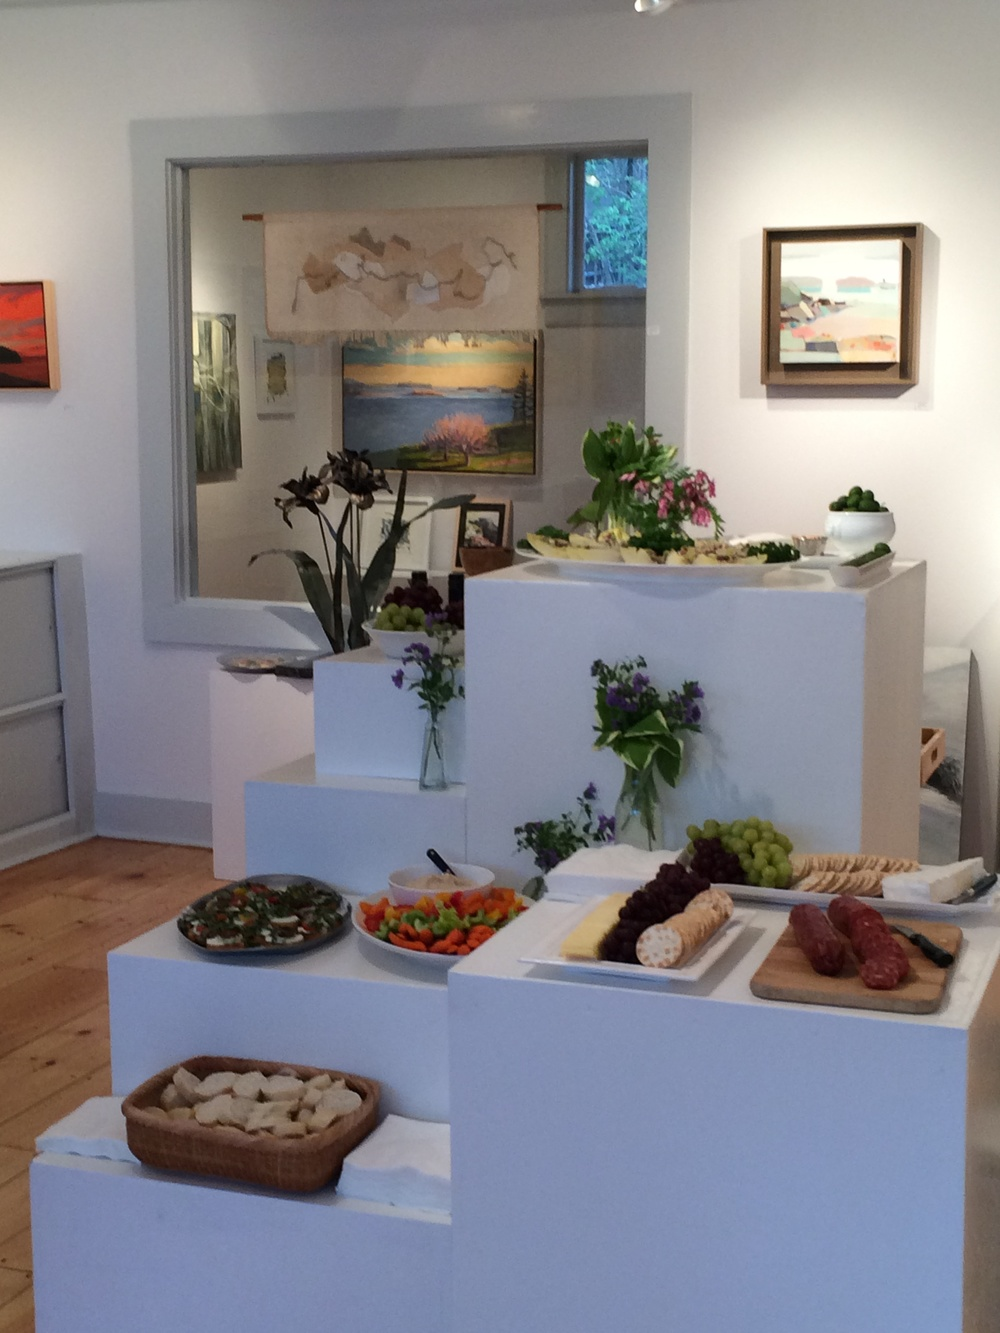 left to right I see artwork by Susan Parish Adam, Kara Taylor, Gayle Lewis, Louise Bourne, Liddy Fitz-Gerald (above), and Hannah Bureau. Also I see those incredible green olives from Max at the  Blue Hill Wine Shop